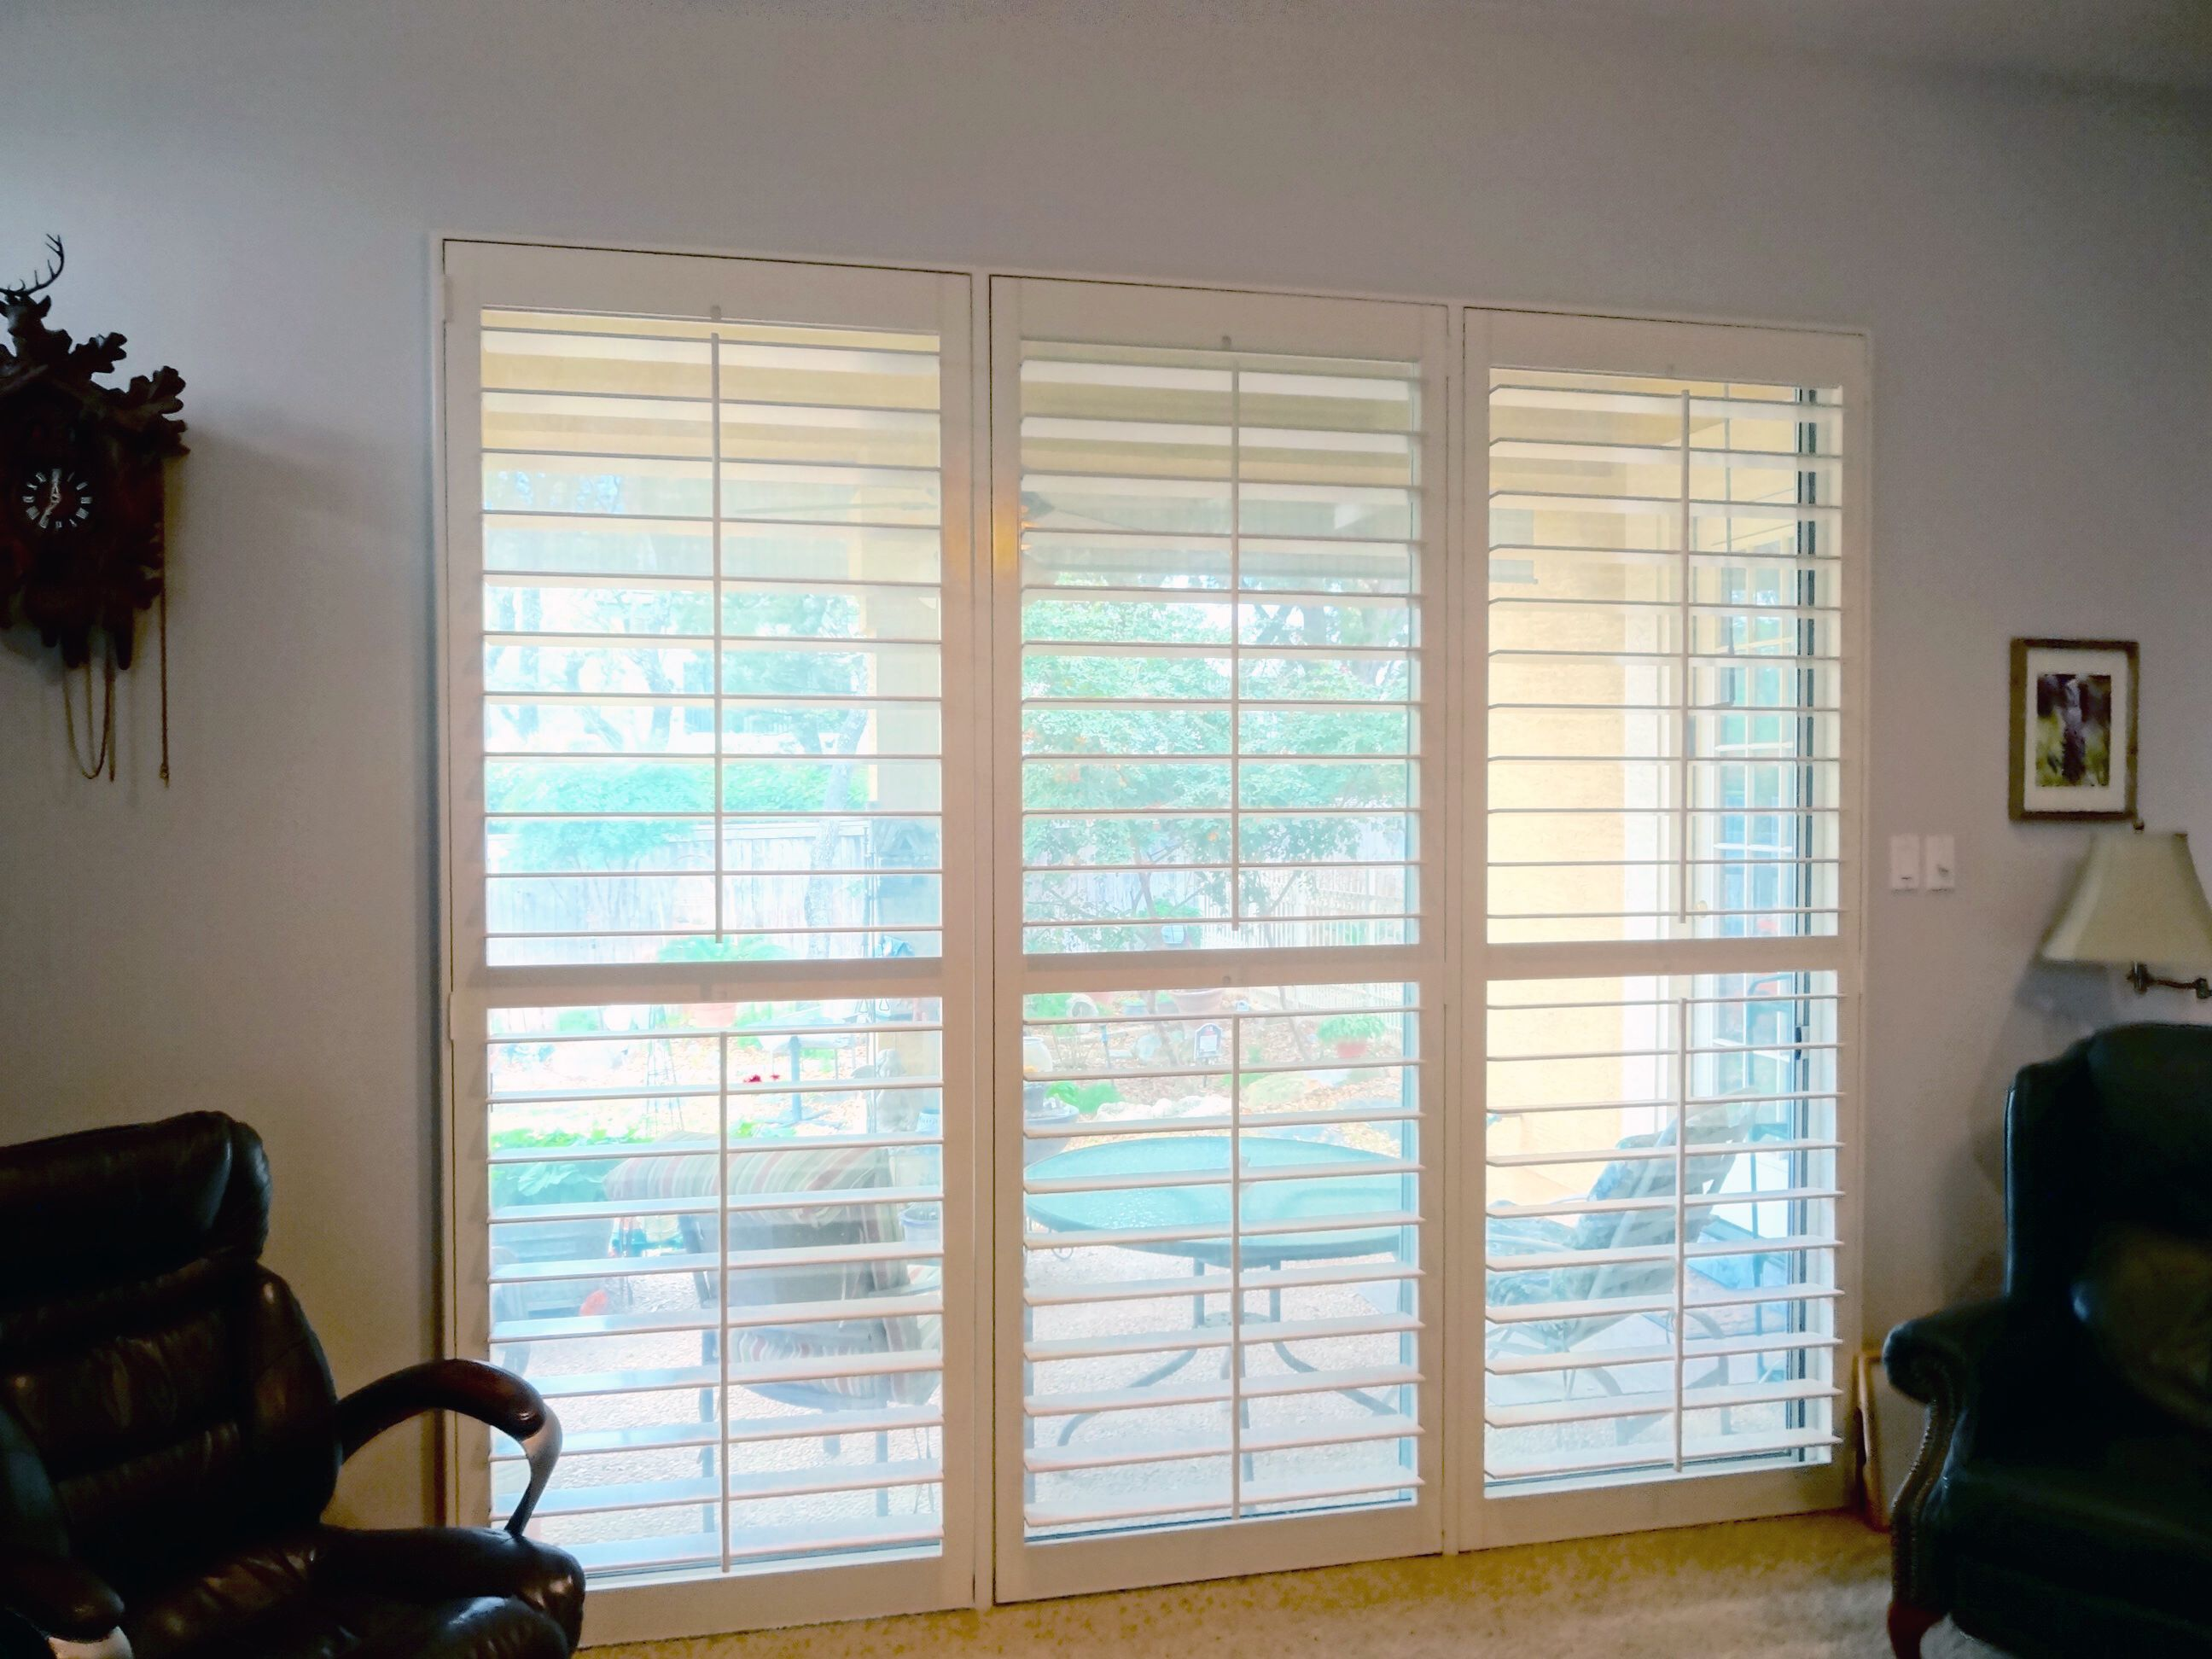 For Shutters Shades And Blinds Window Fashions Of Texas Has Been The Premier Choice Since We Re Oldest Largest Hunter Douglas Dealer